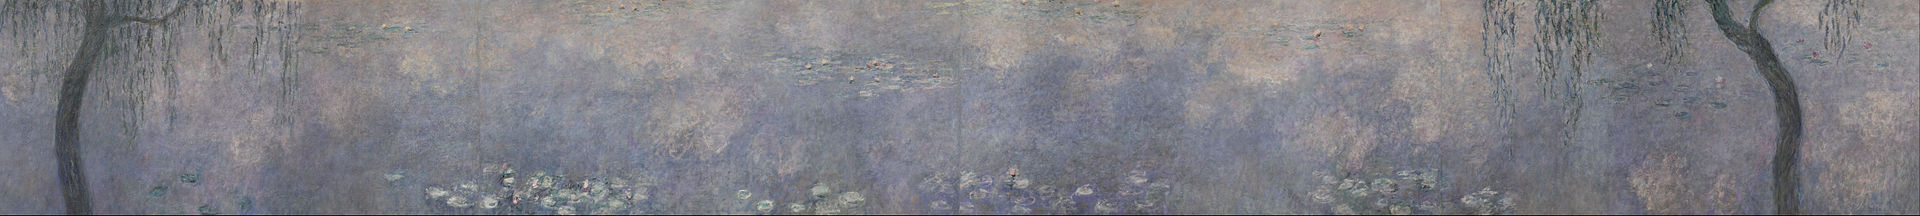 Claude Monet - The Water Lilies - The Two Willows - Google Art Project.jpg